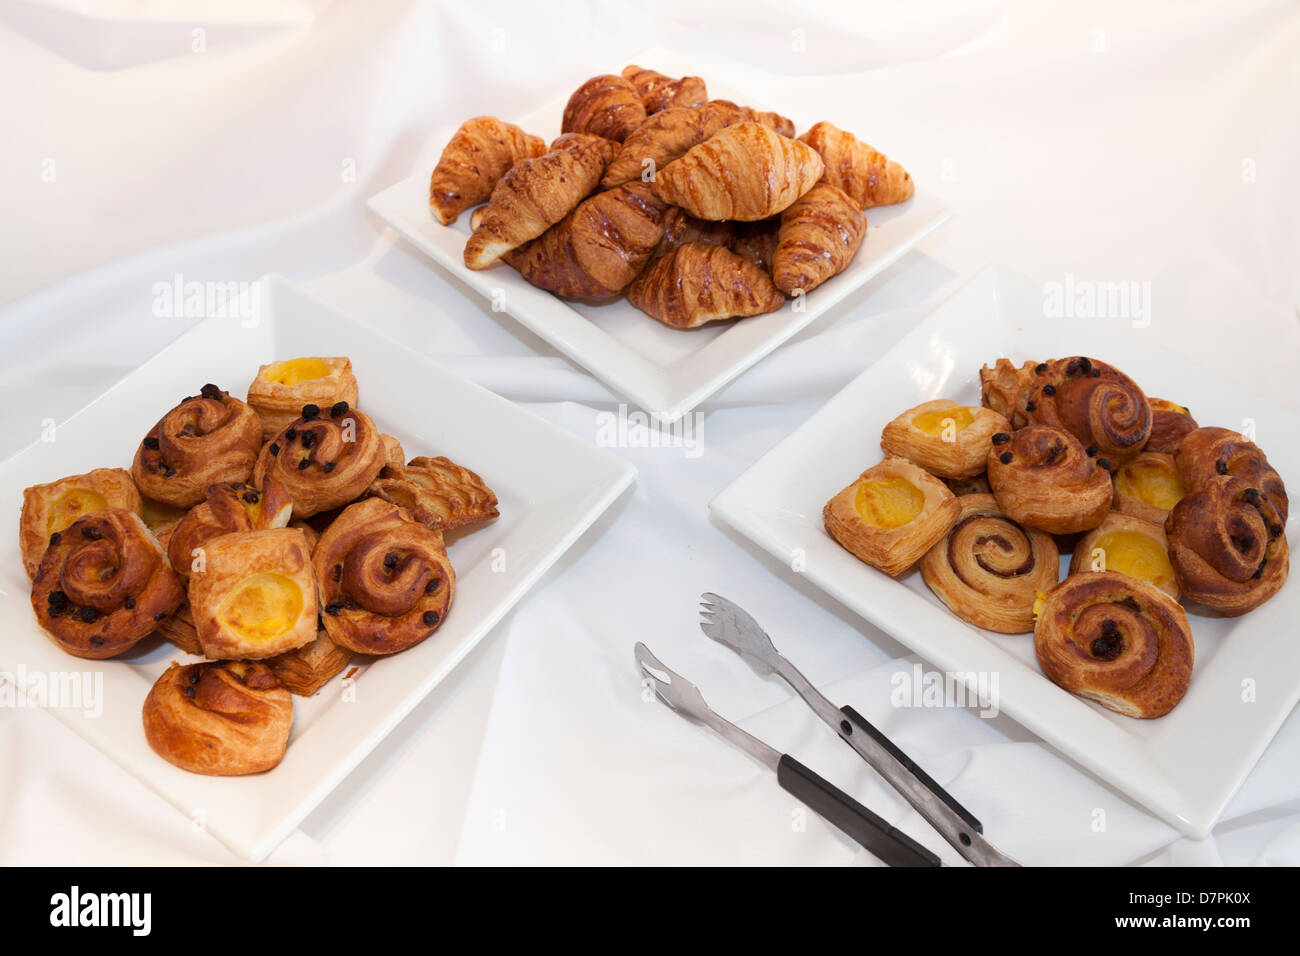 Croissants and Danish pastries on a hotel breakfast table with serving fork - Stock Image